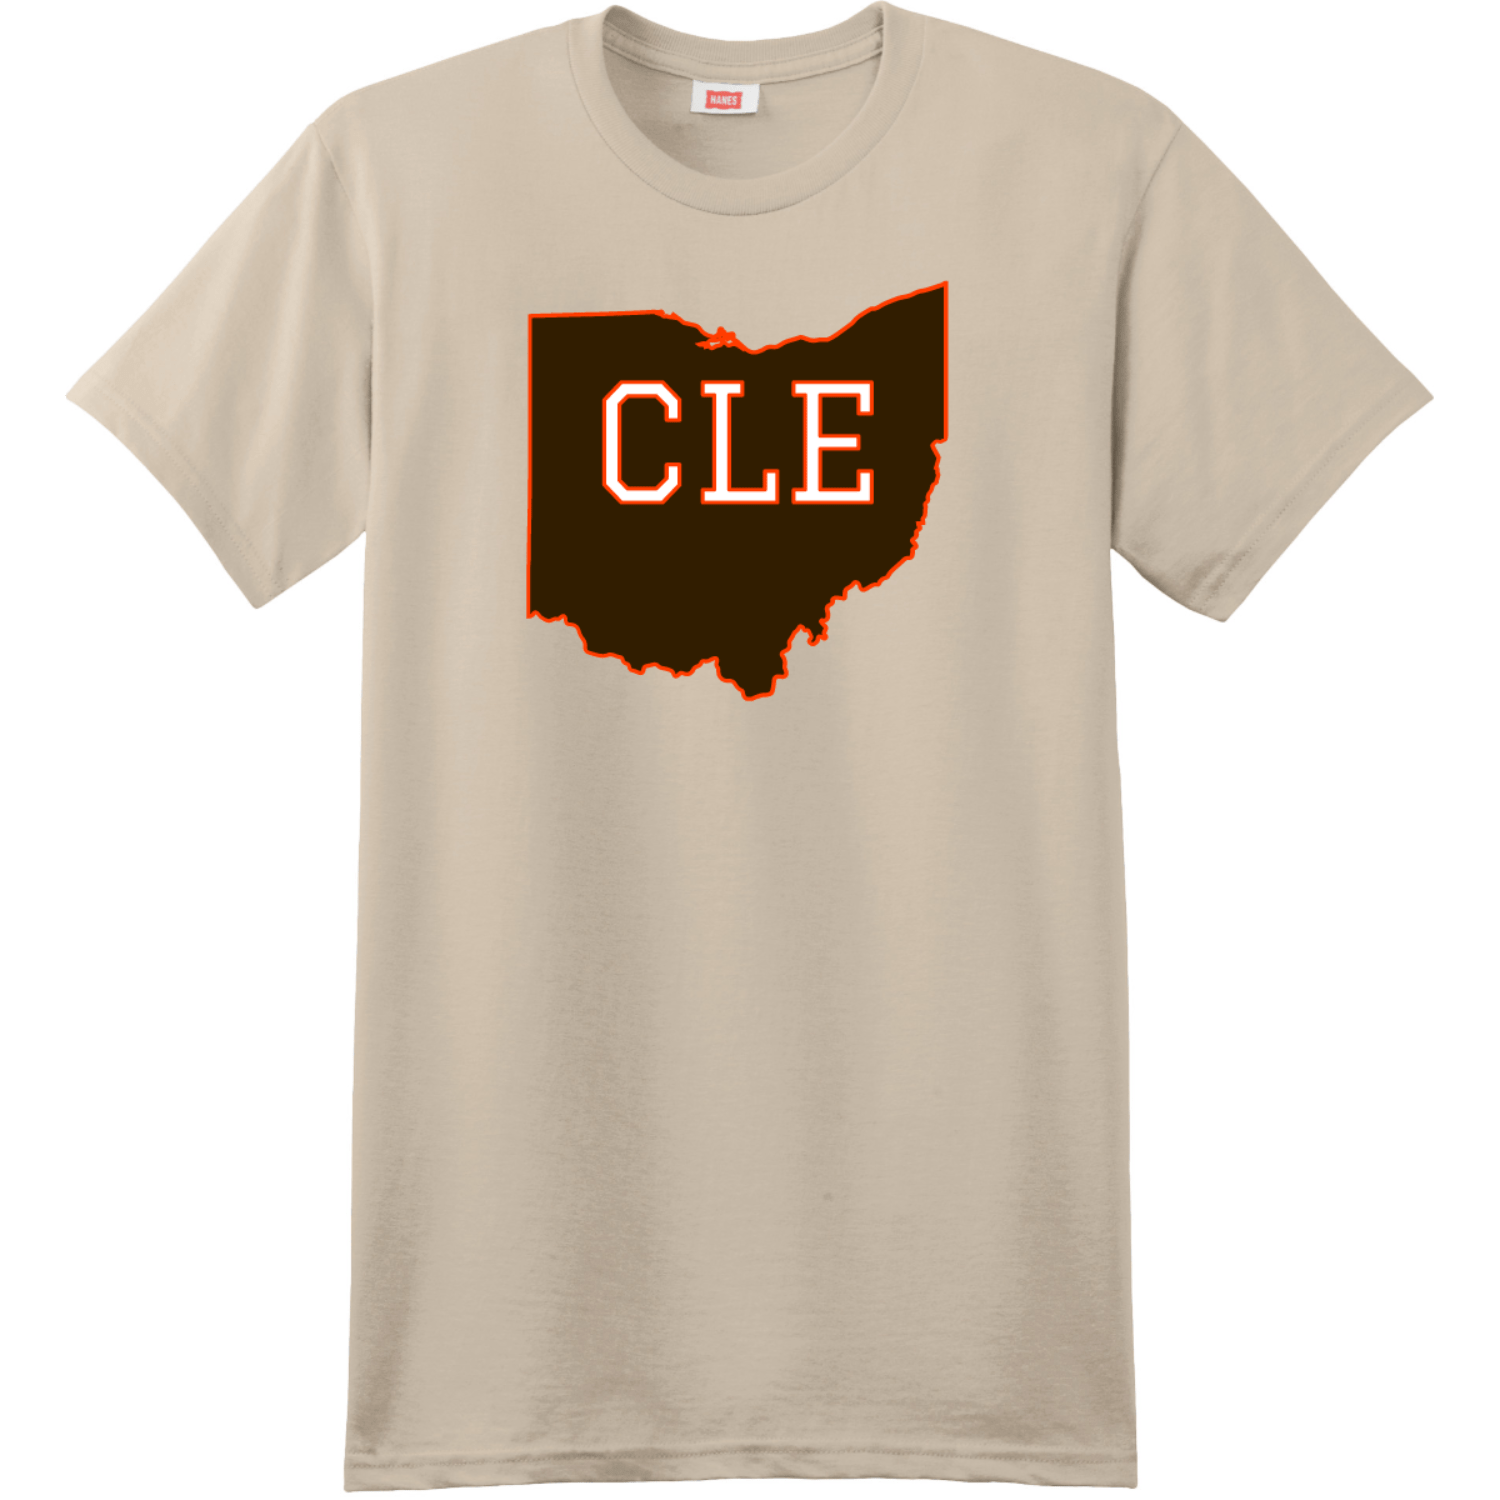 CLE Cleveland Ohio State T Shirt Sand Hanes Nano 4980 Ringspun Cotton T Shirt